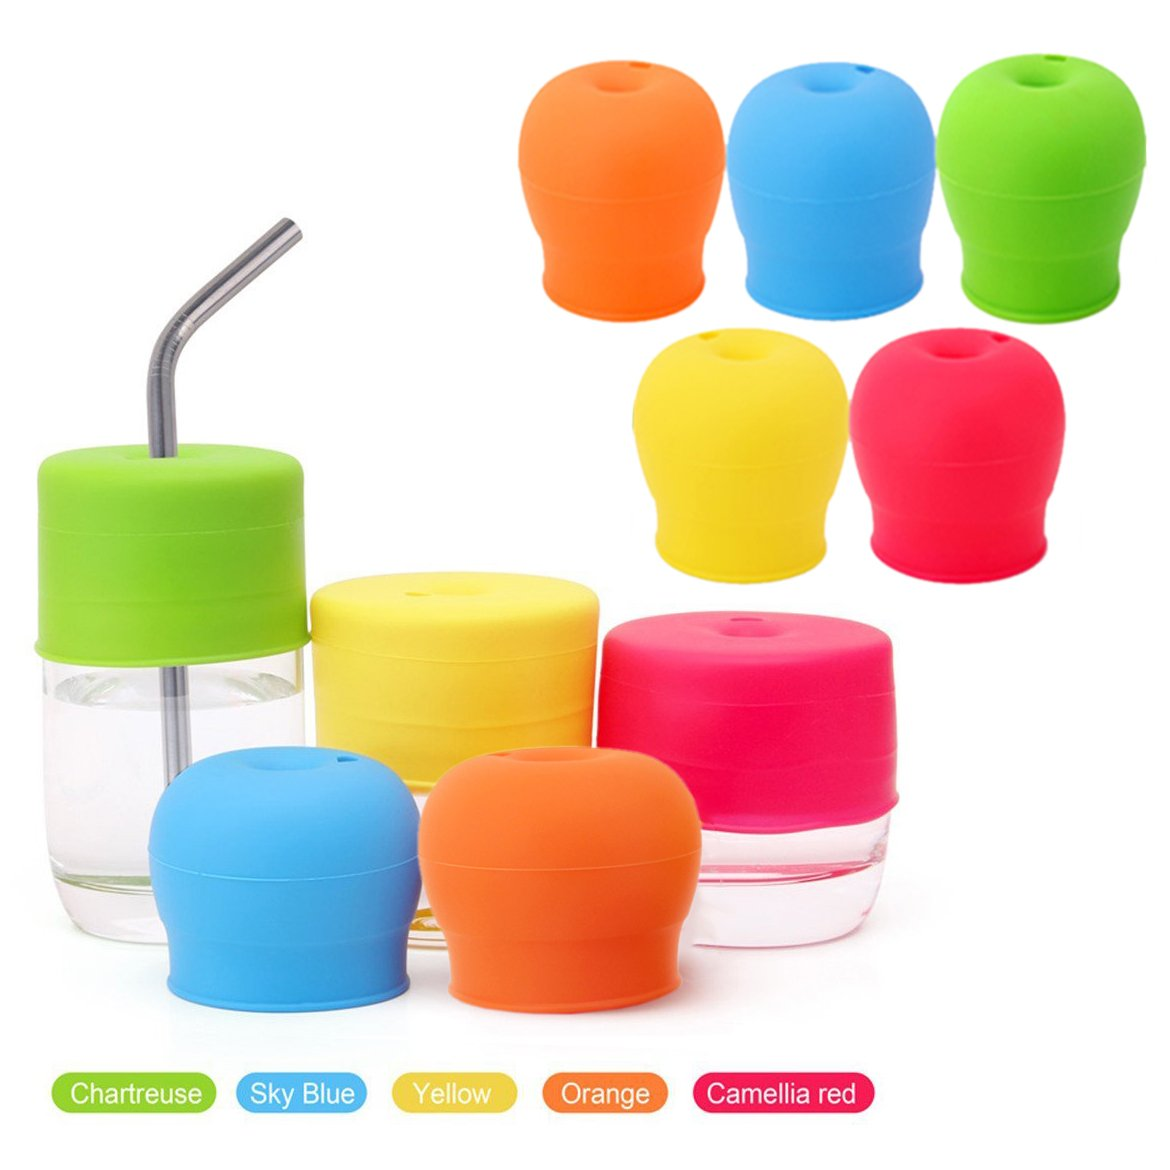 OFKPO 5 PCS Silicone Sippy Lids Reusable Silicone Straw Cup Lids Spill-Proof Sippy Cup for Babies and Toddlers